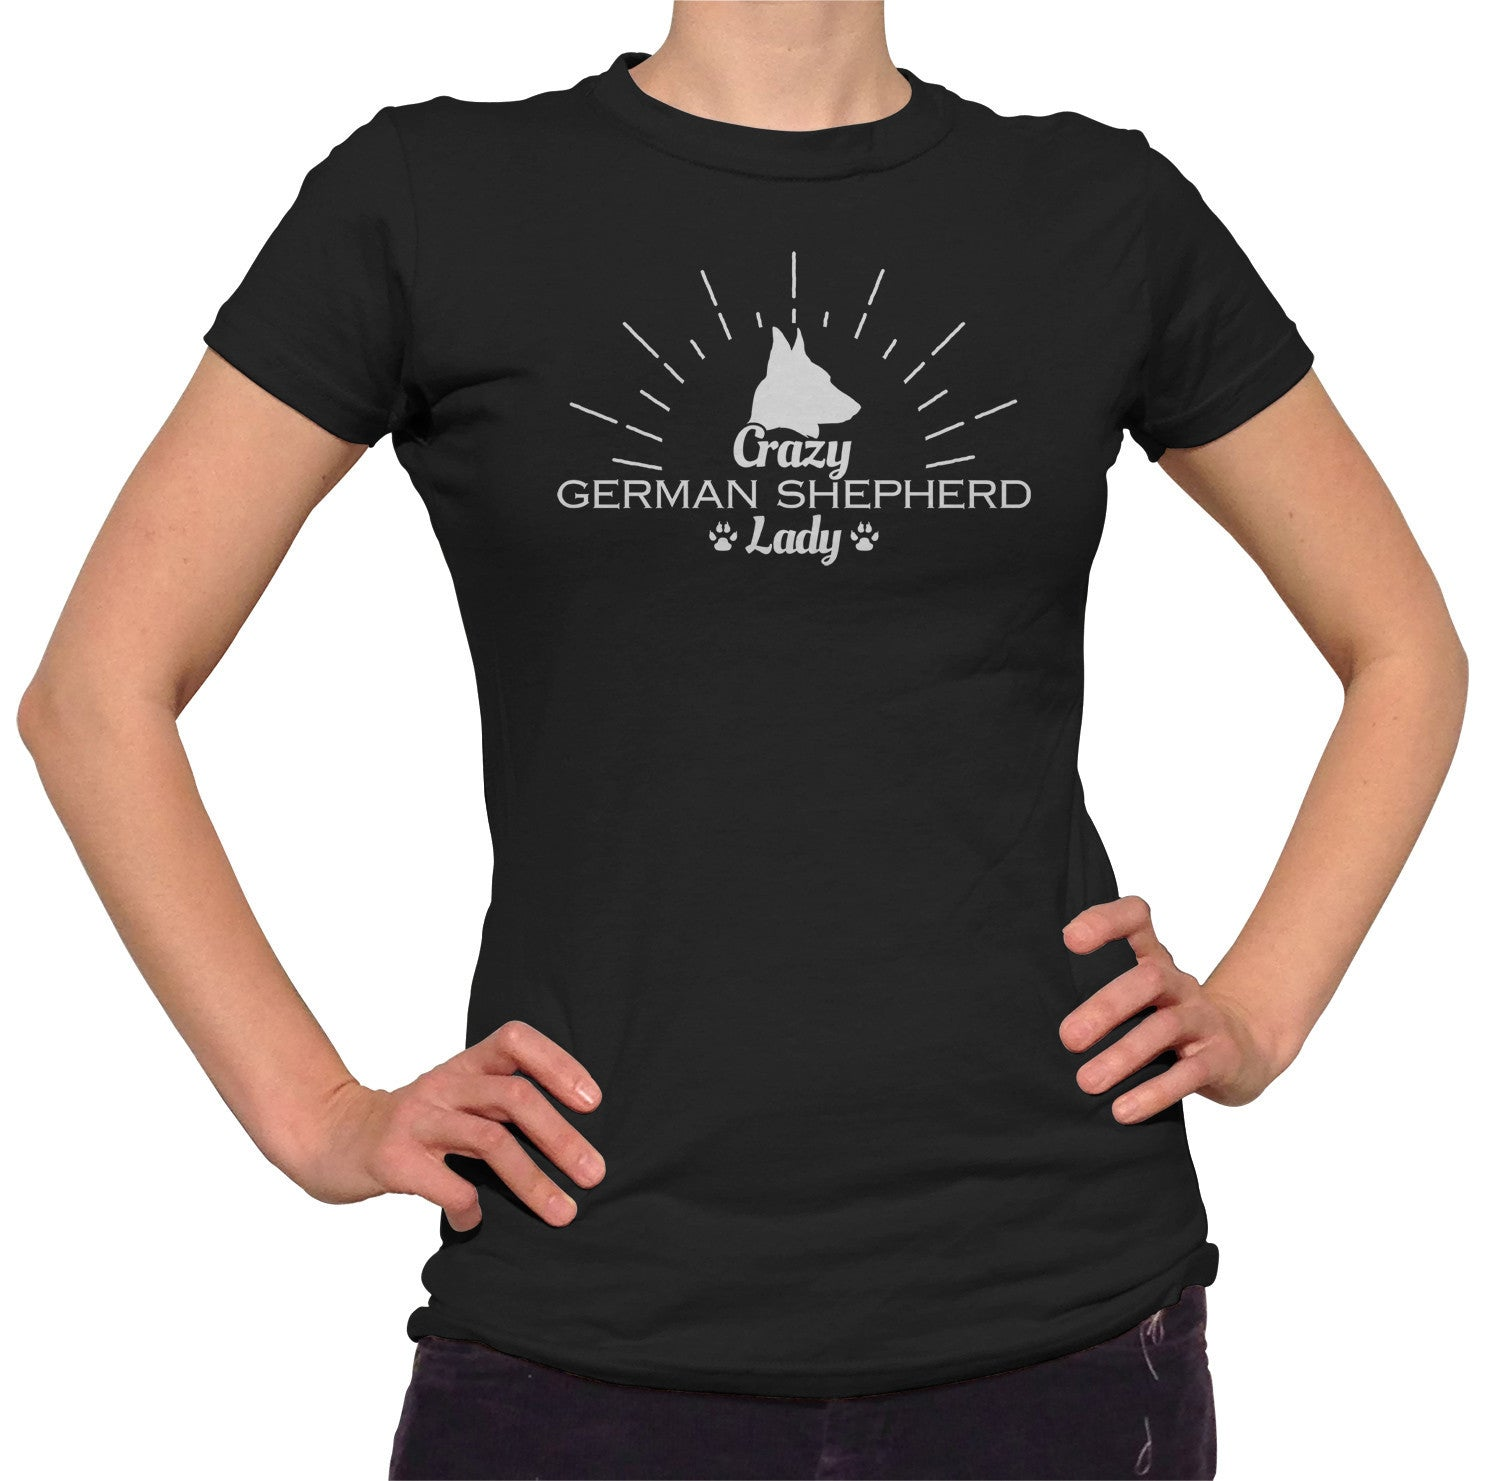 Women's Crazy German Shepherd Lady T-Shirt